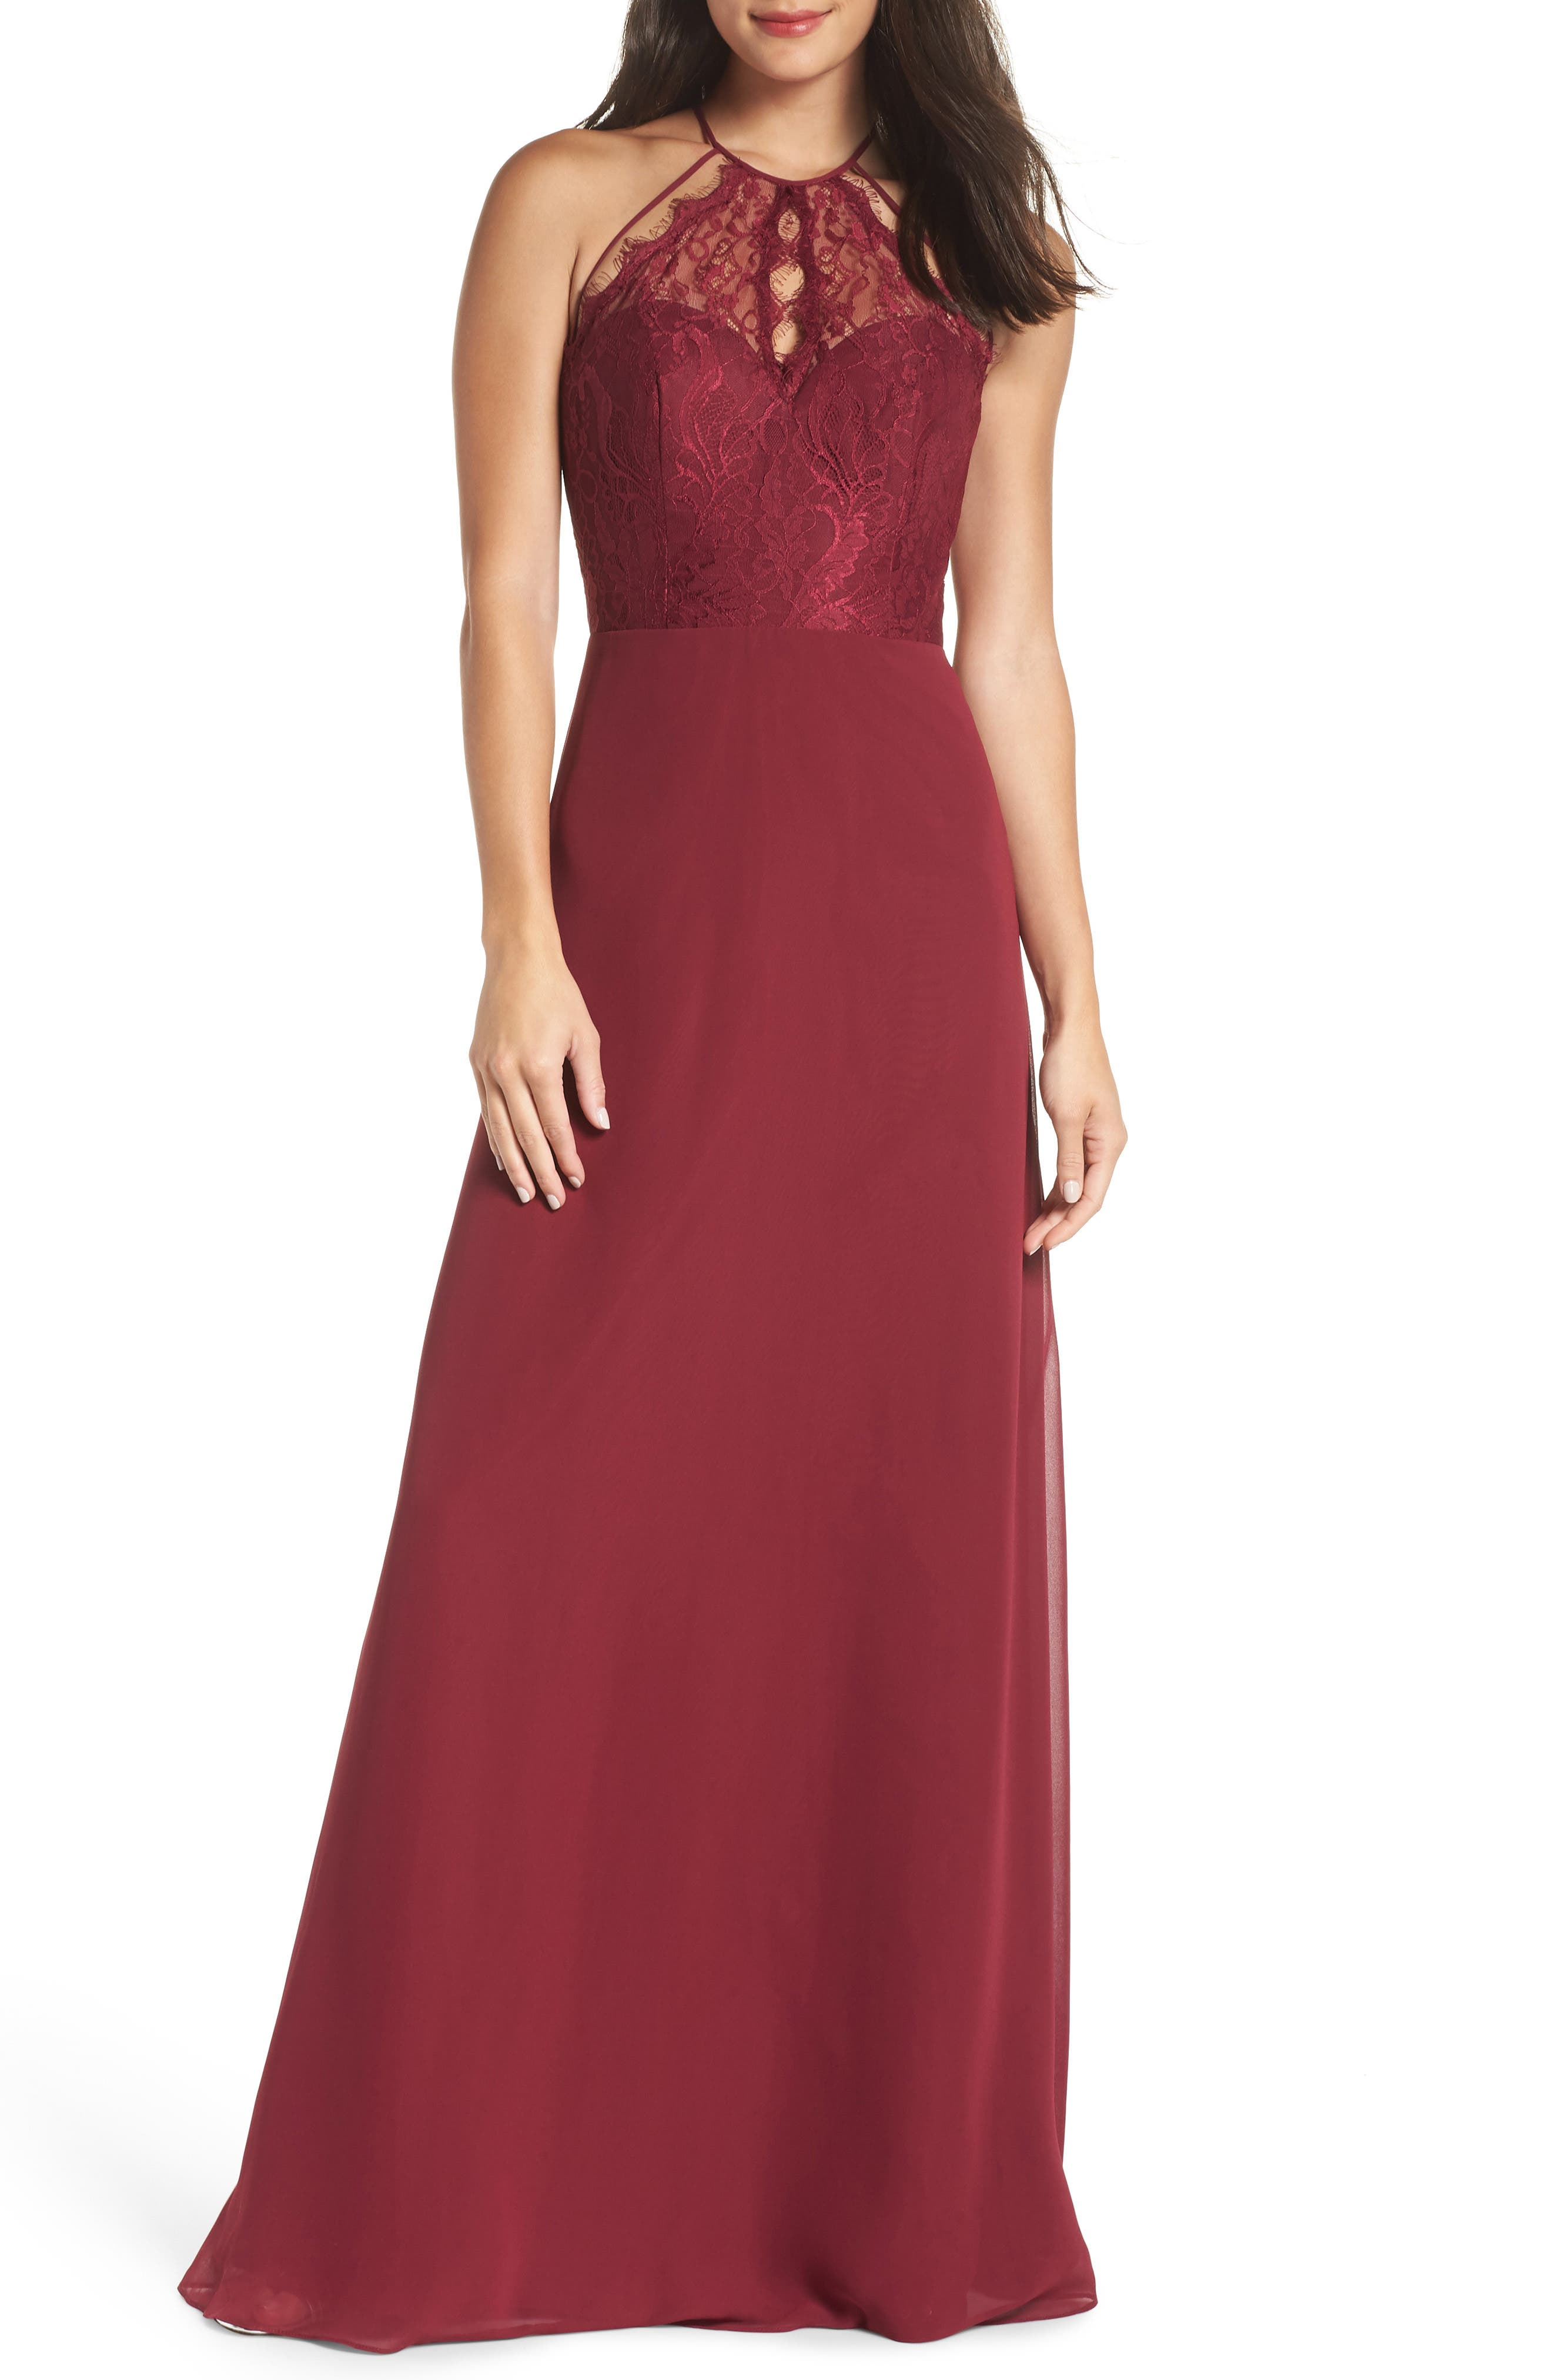 HAYLEY PAIGE OCCASIONS Lace & Chiffon Halter Gown, Main, color, BURGUNDY